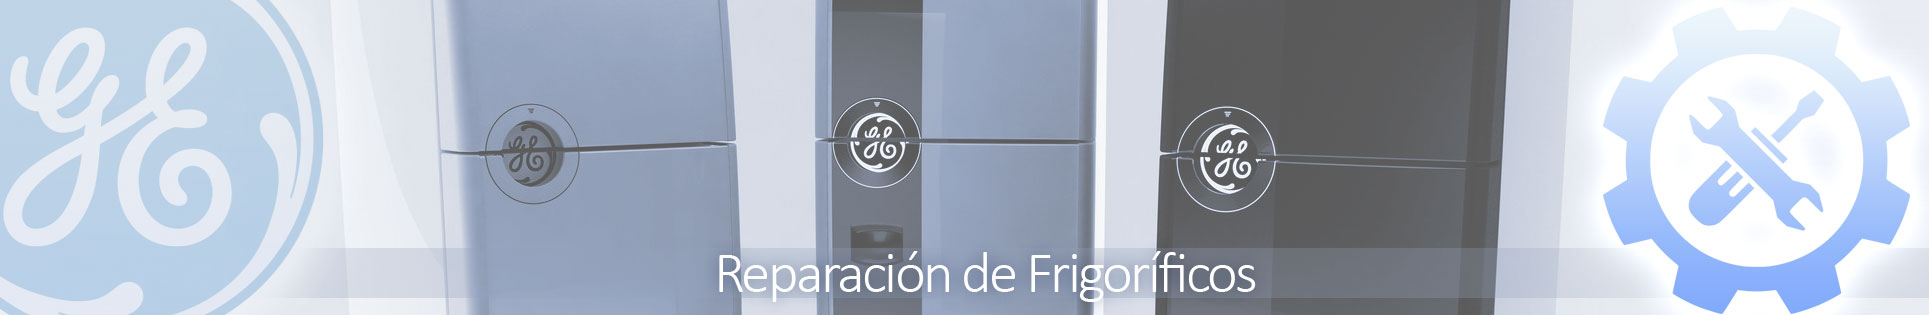 reparacion de frigorificos general electric